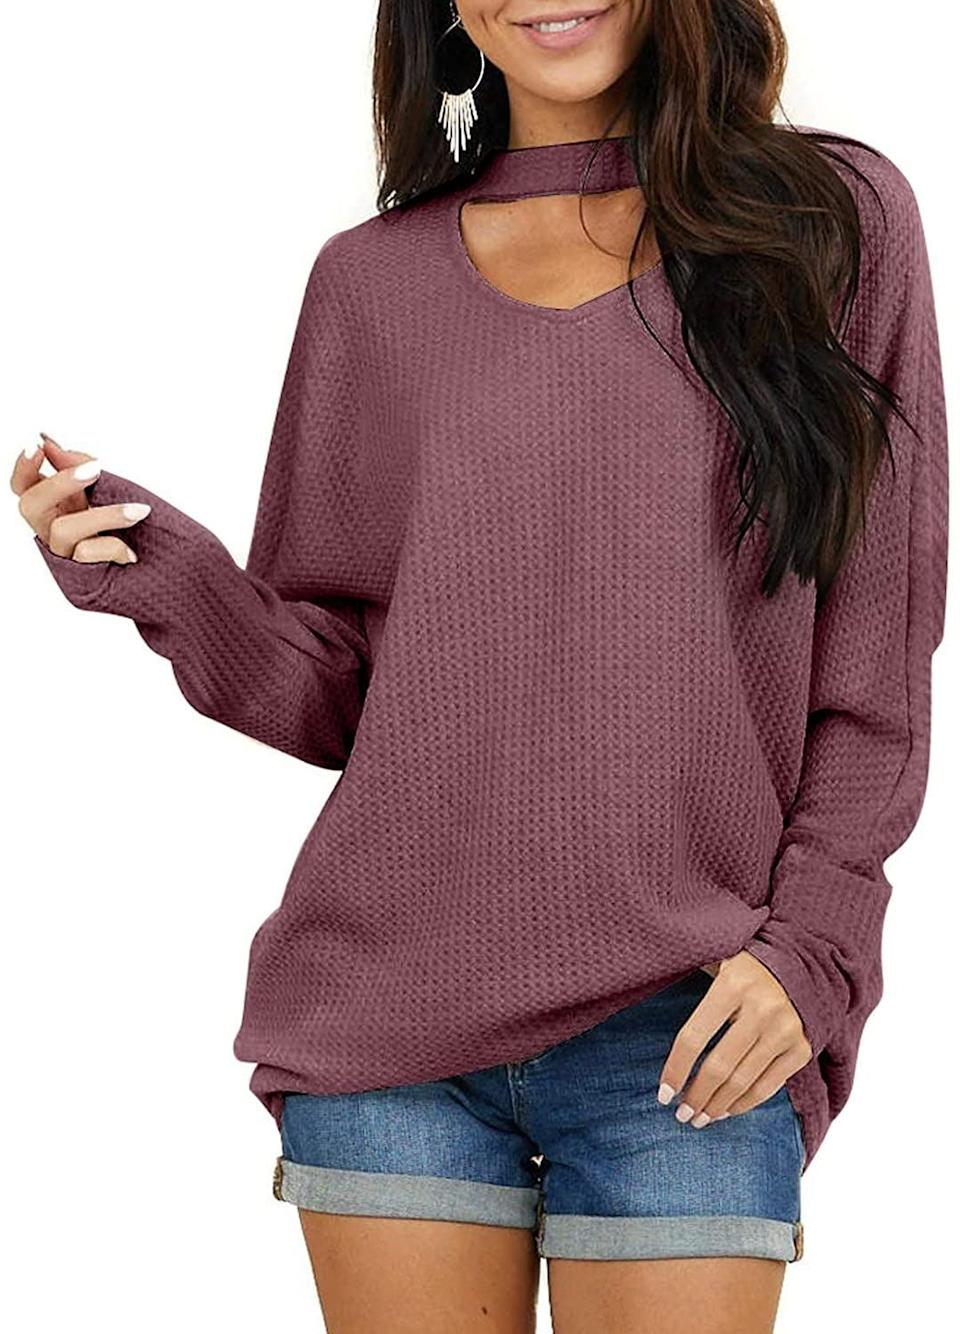 <p>The neck detail of this <span>Samefar Oversized Waffle Knit Sweater</span> ($10-$19) looks like you're wearing a matching choker.</p>